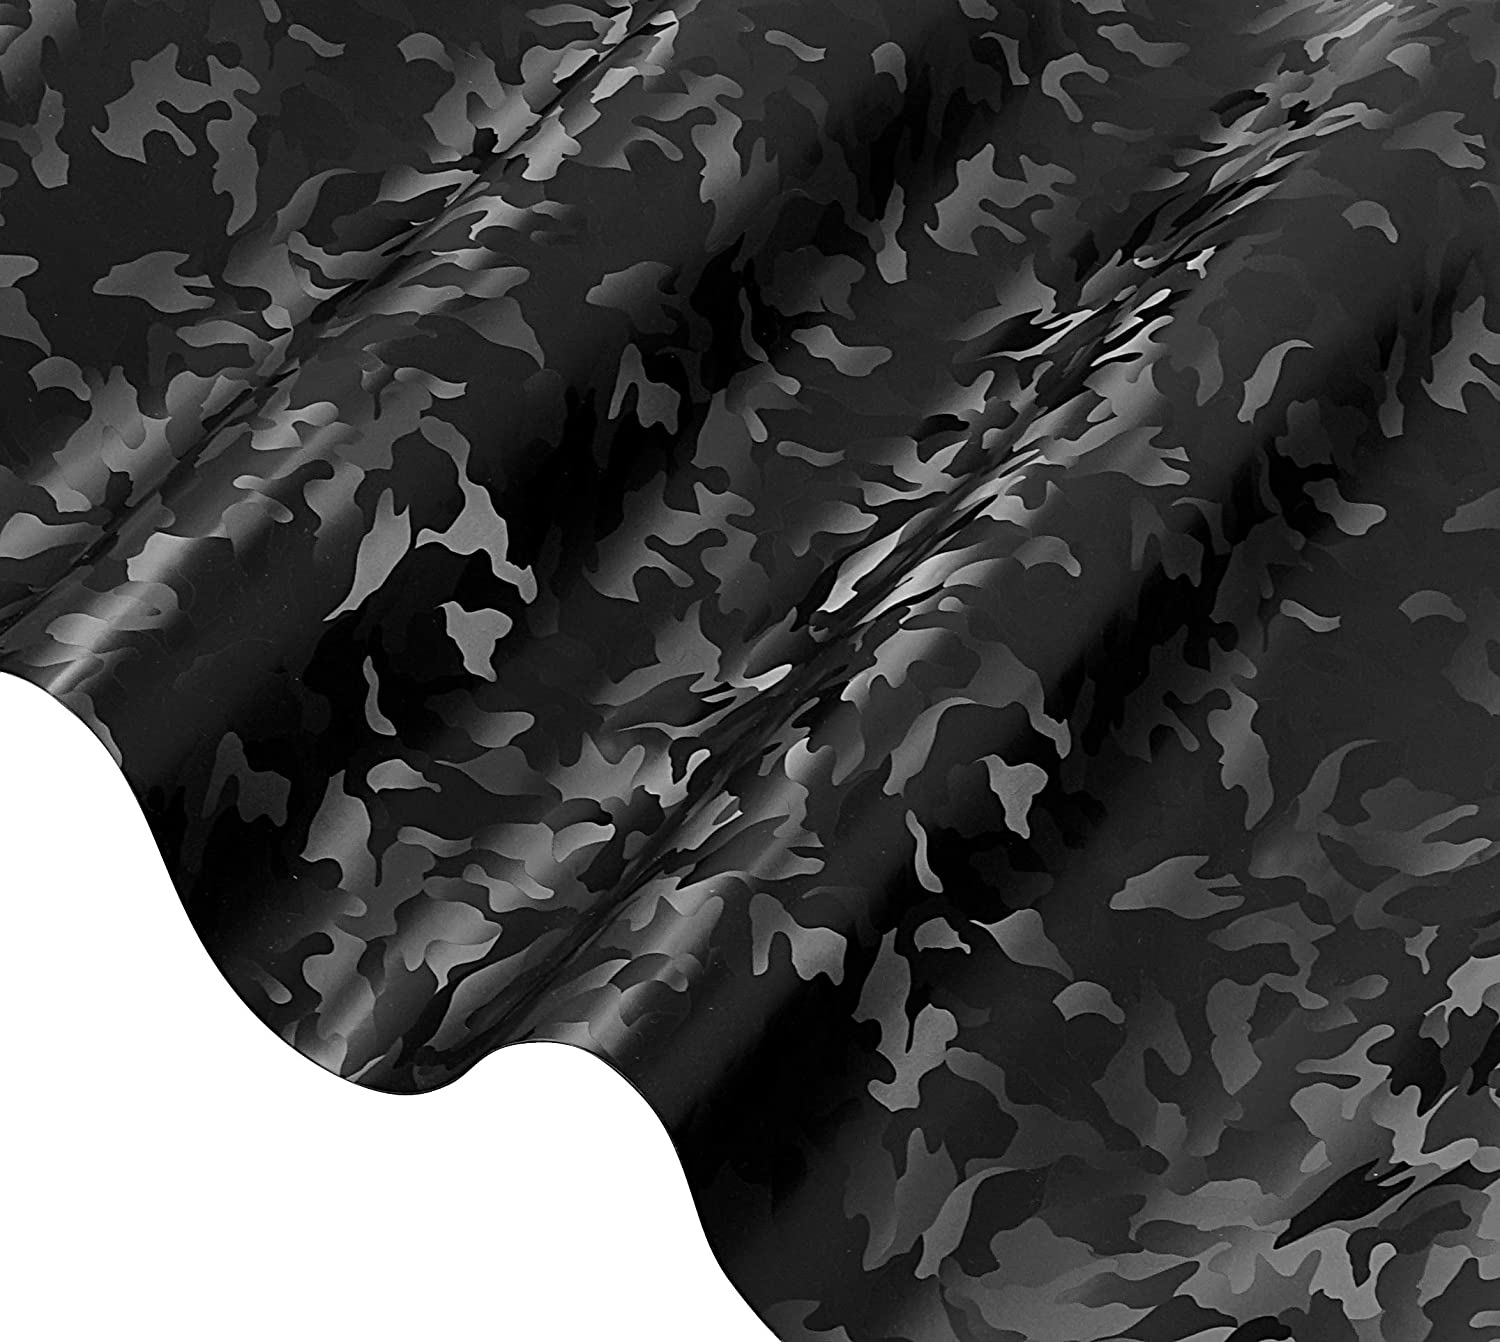 2020 Edition Black Stealth Small Pattern Camouflage Vinyl Wrap Roll 1ft x 5ft VViViD